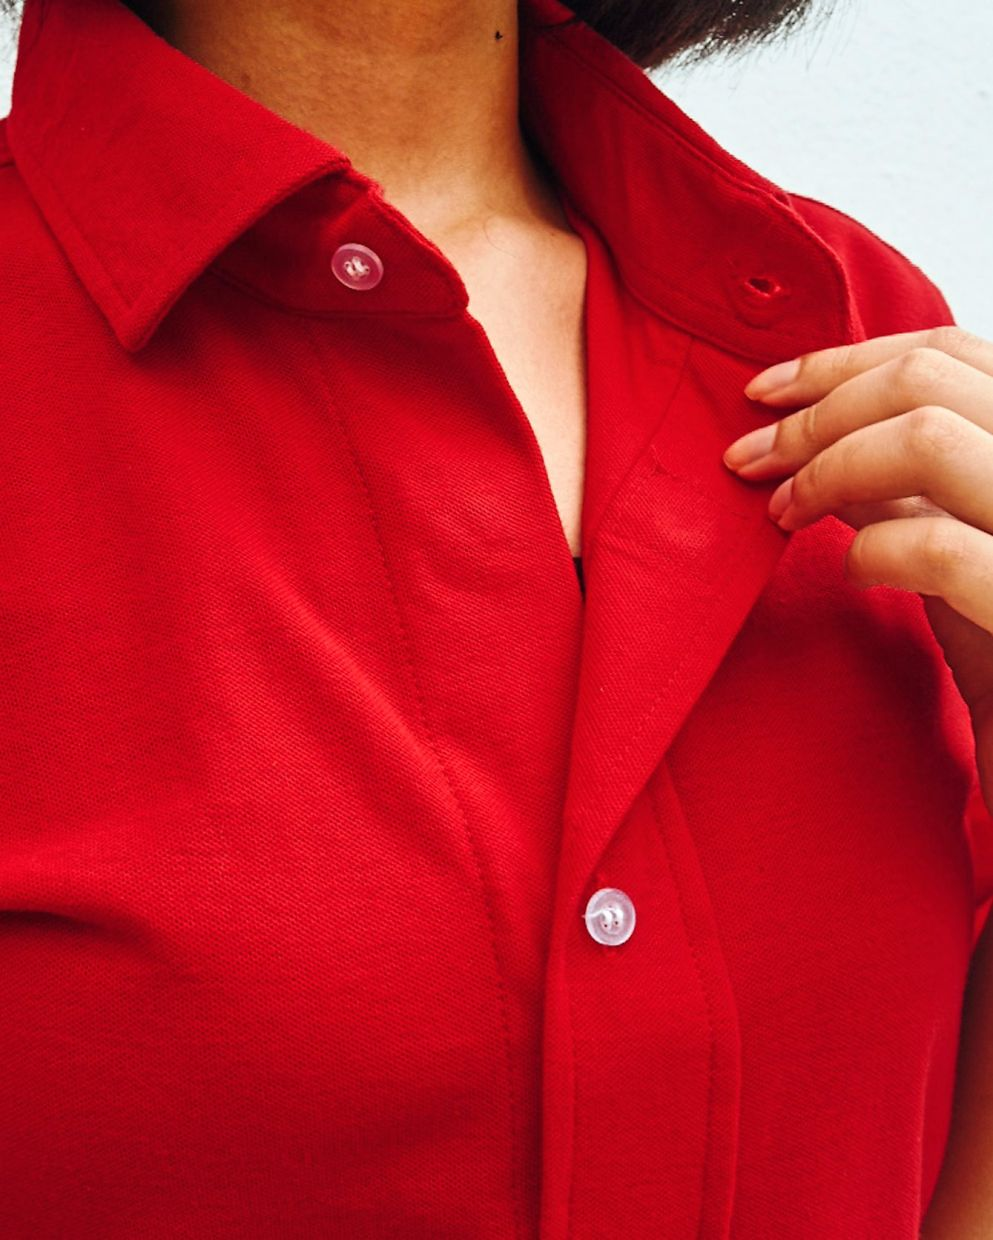 Usha's magnetic button polo T-shirts were tested on people with dexterity issues to ensure they could wear and remove the T-shirts easily.